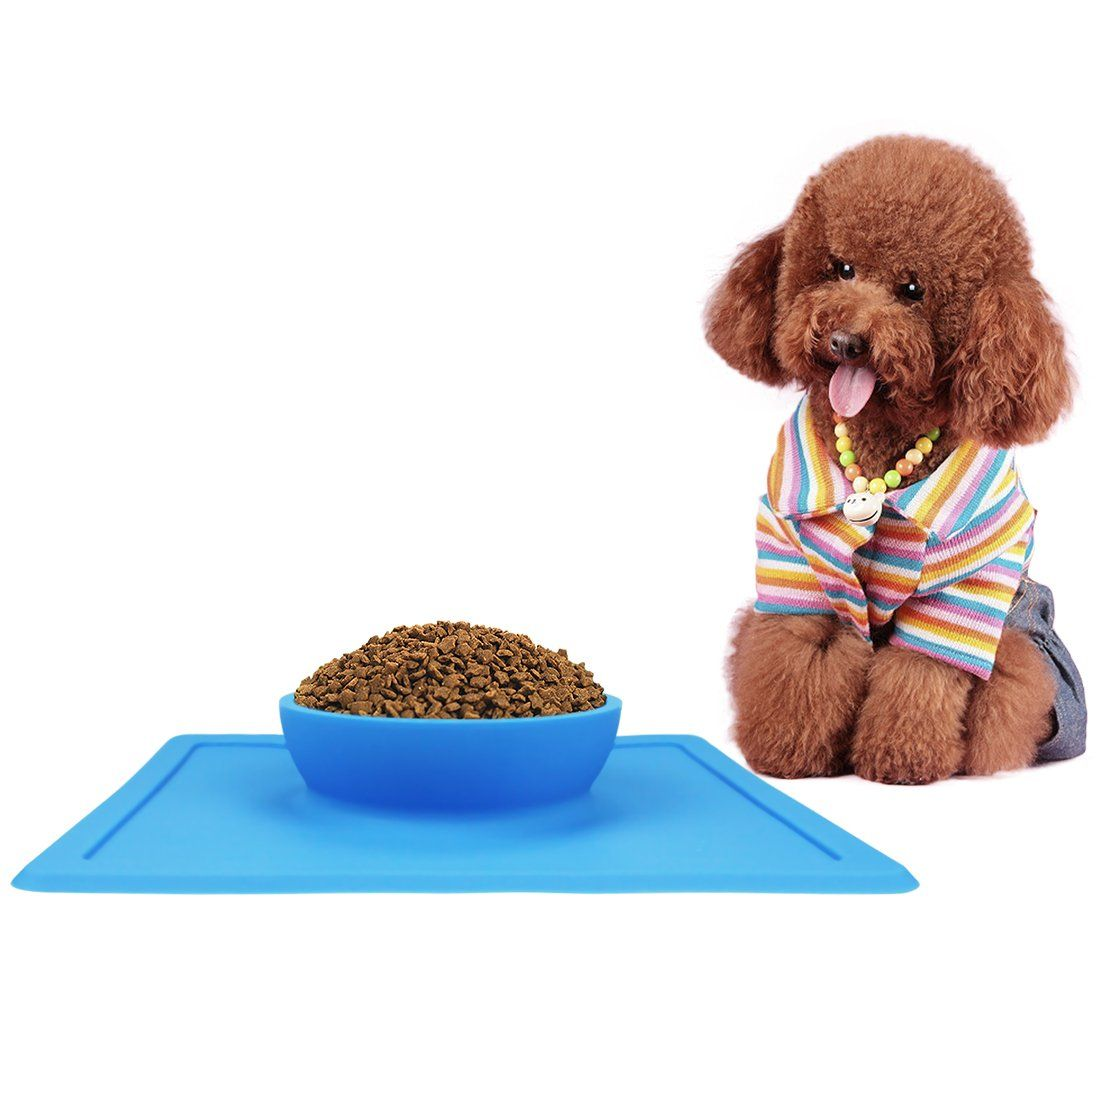 Pantipinky silicone dog cat pet bowls dog feeder with